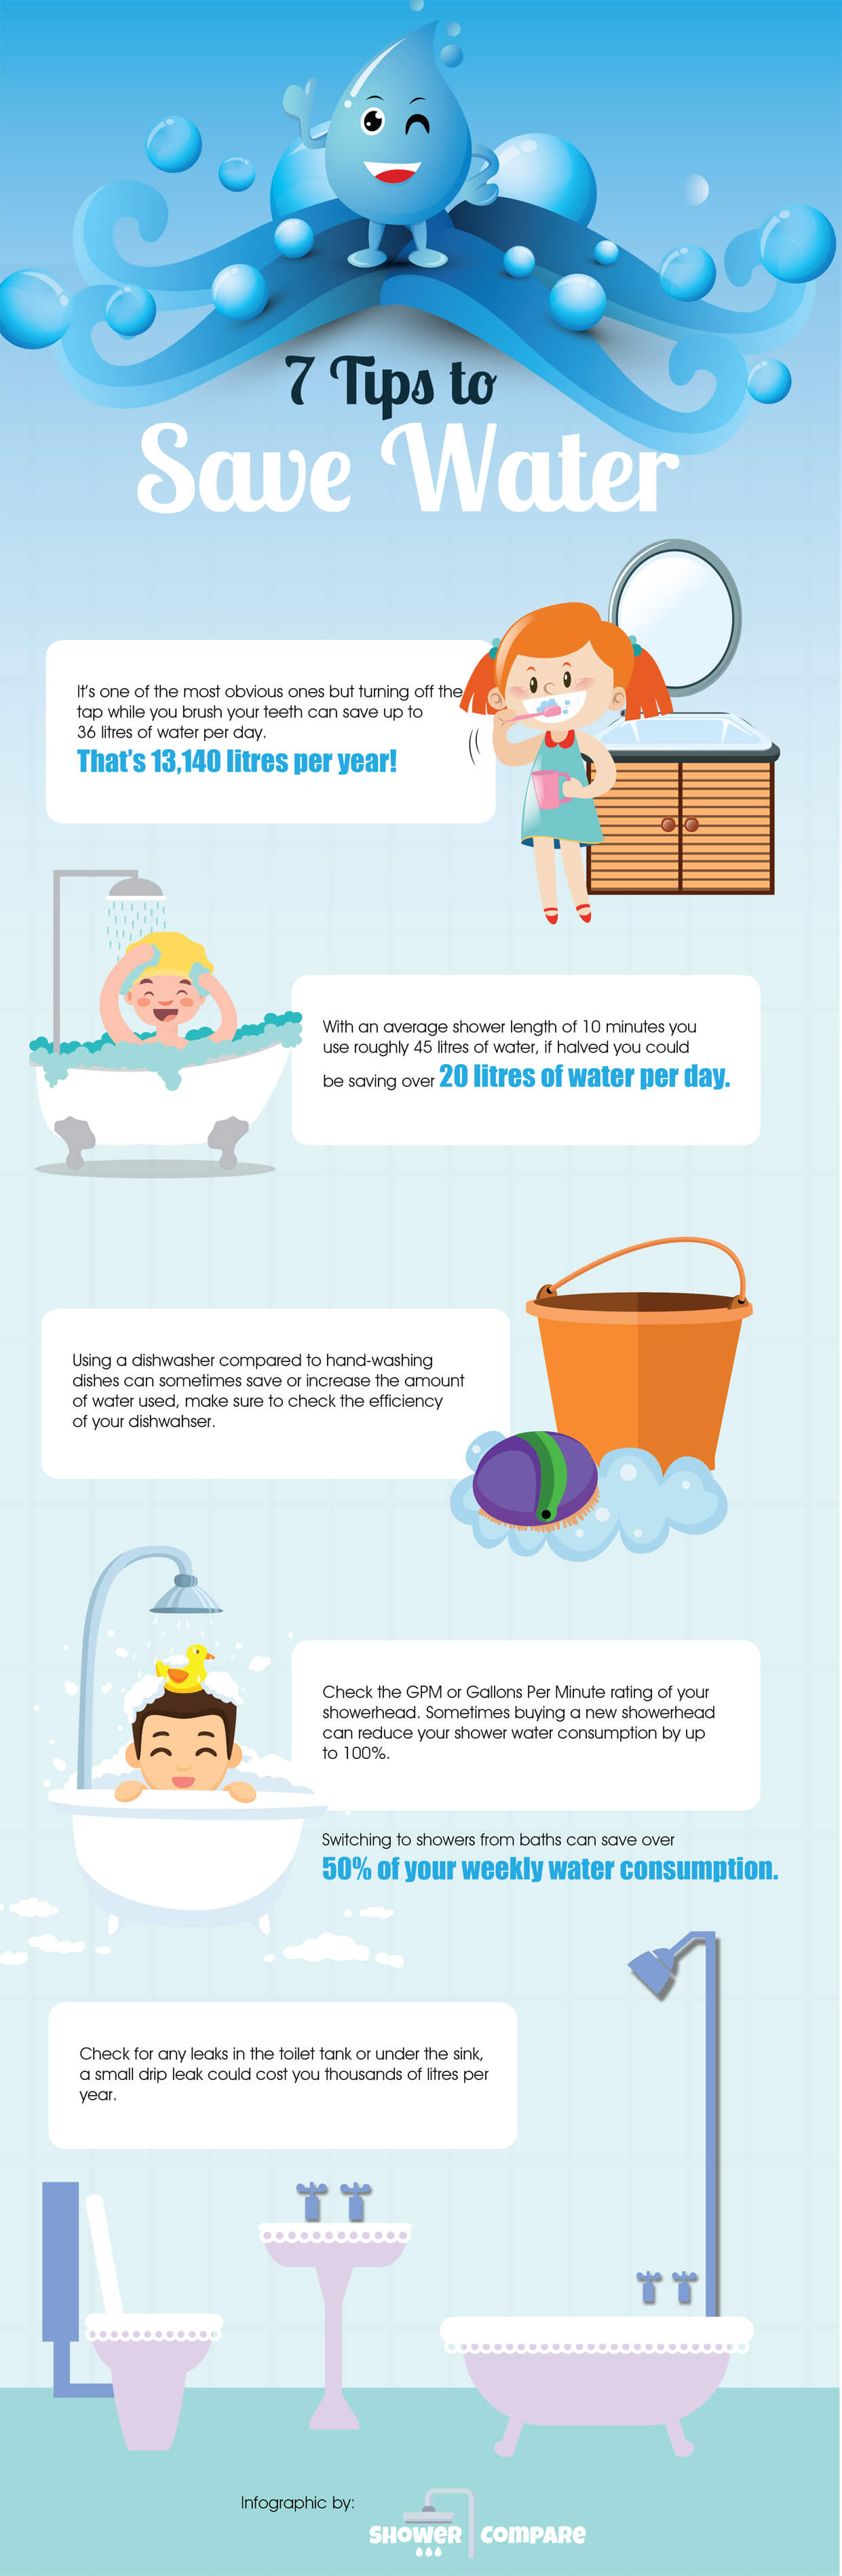 7-tips-to-save-water-infographic-plaza